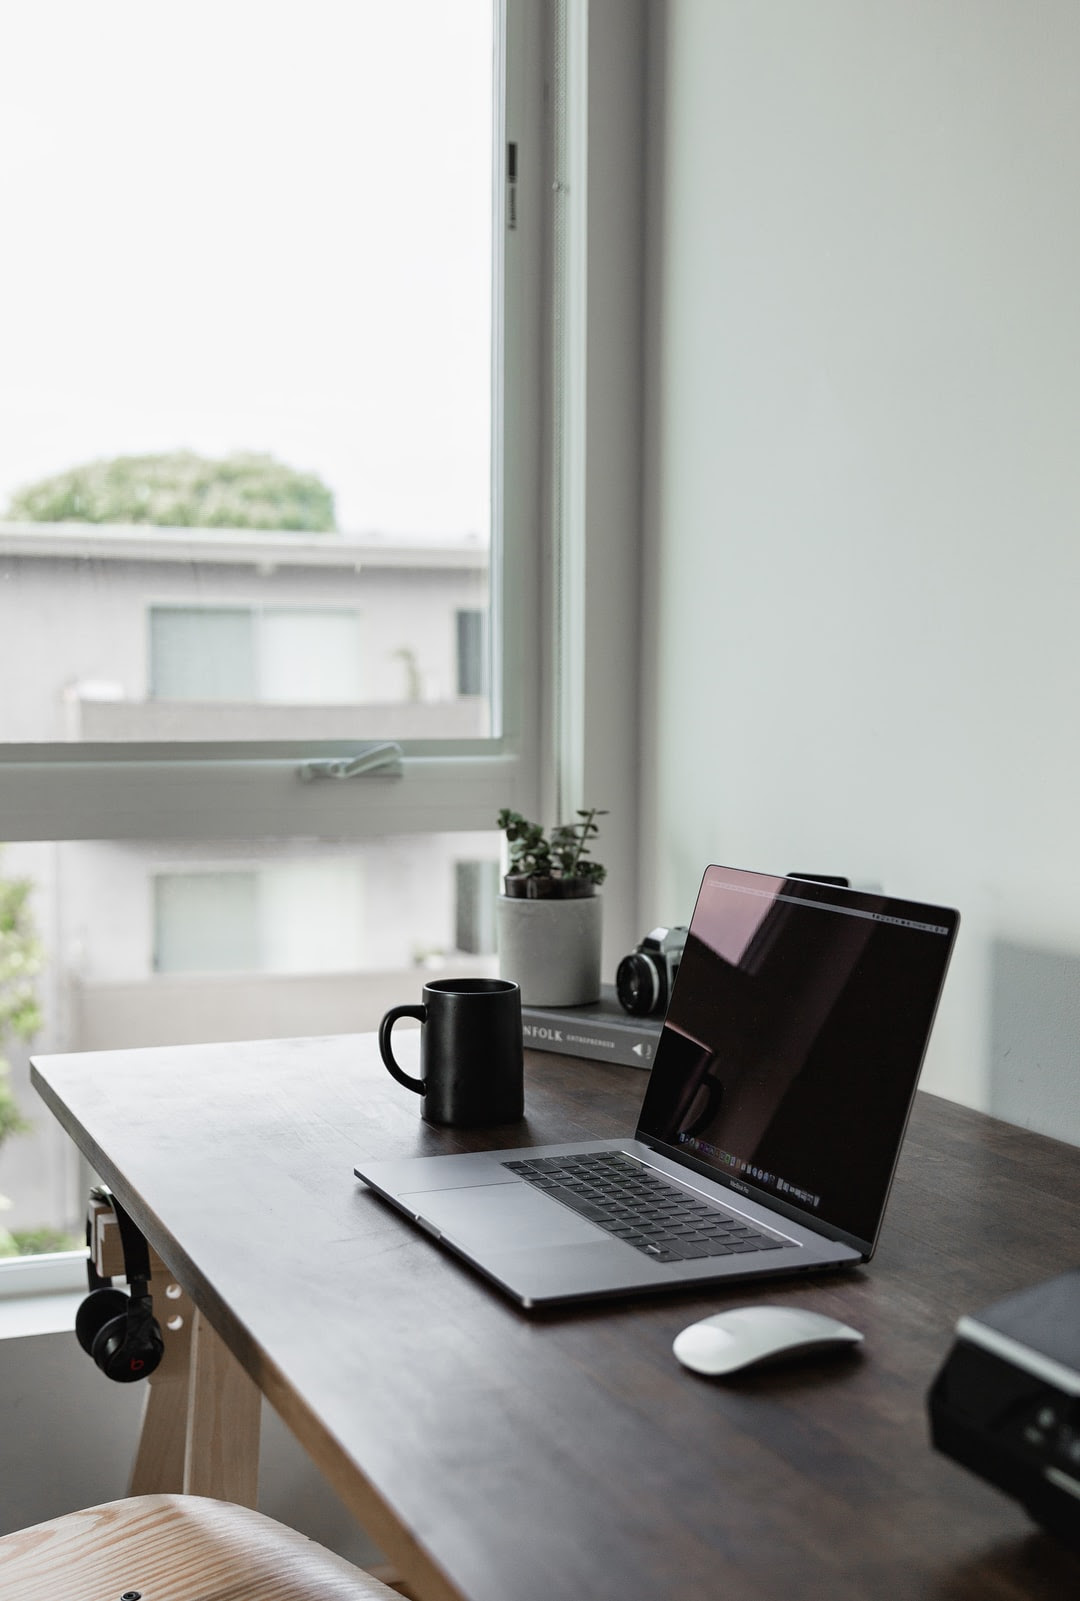 500+ Home Office Pictures [HD] | Download Free Images on ...